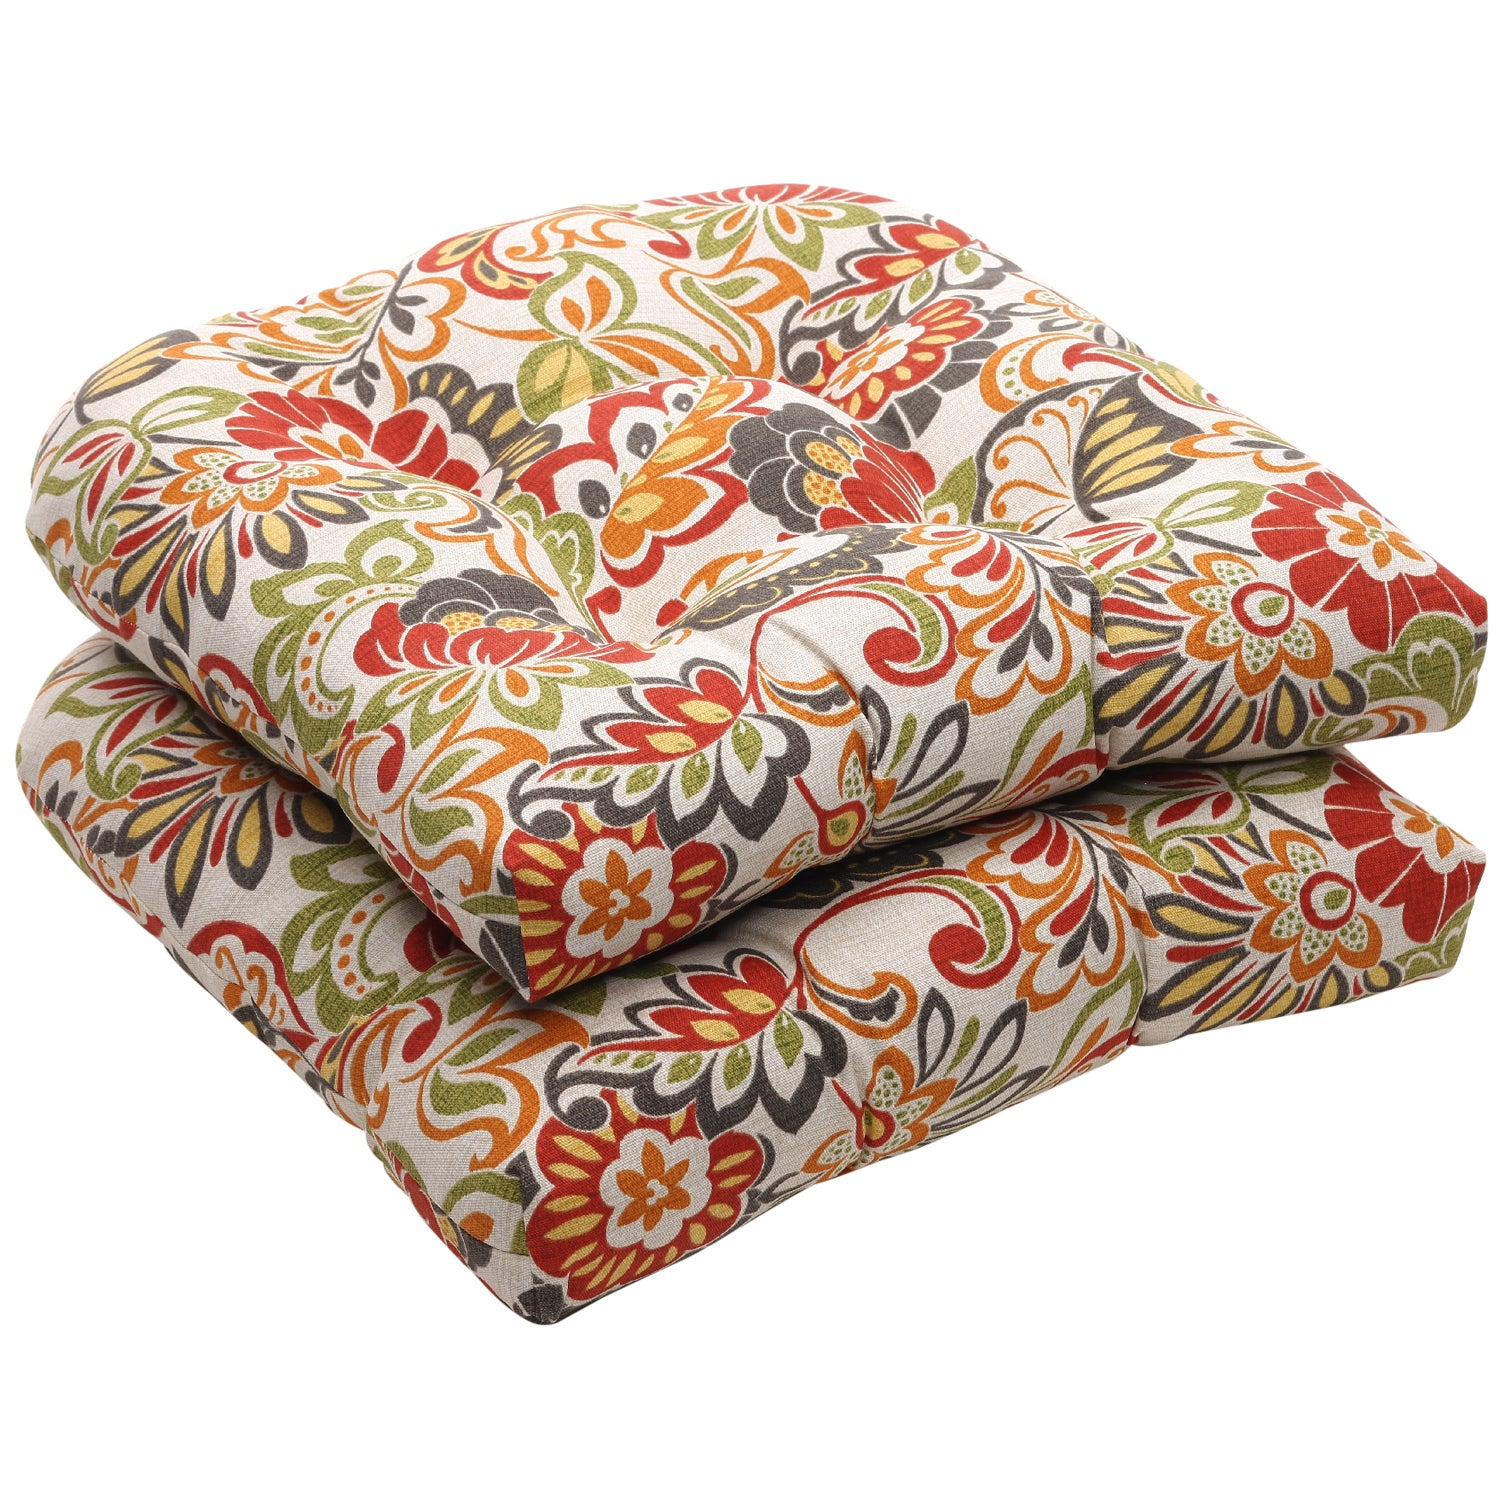 Outdoor Multicolored Floral Wicker Seat Cushions Set of 2  : Outdoor Multicolored Floral Wicker Seat Cushions Set of 2 L14095781 from www.overstock.com size 1500 x 1500 jpeg 570kB